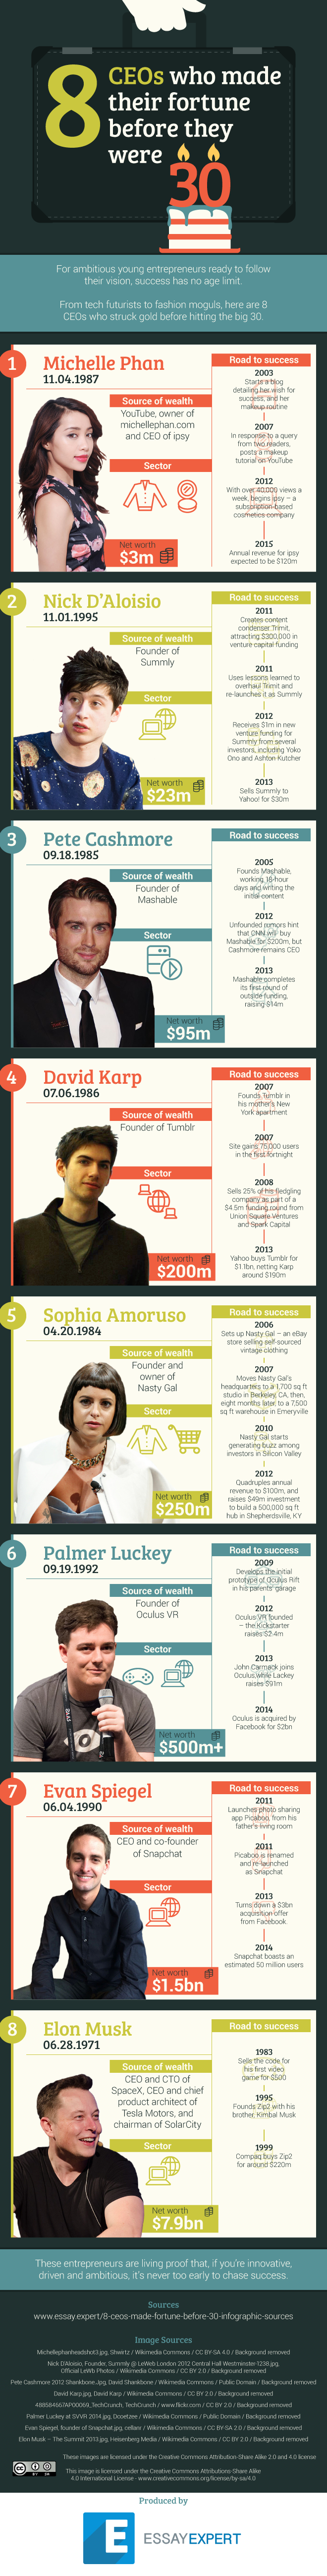 CEOs Millionaire before 30 infographic